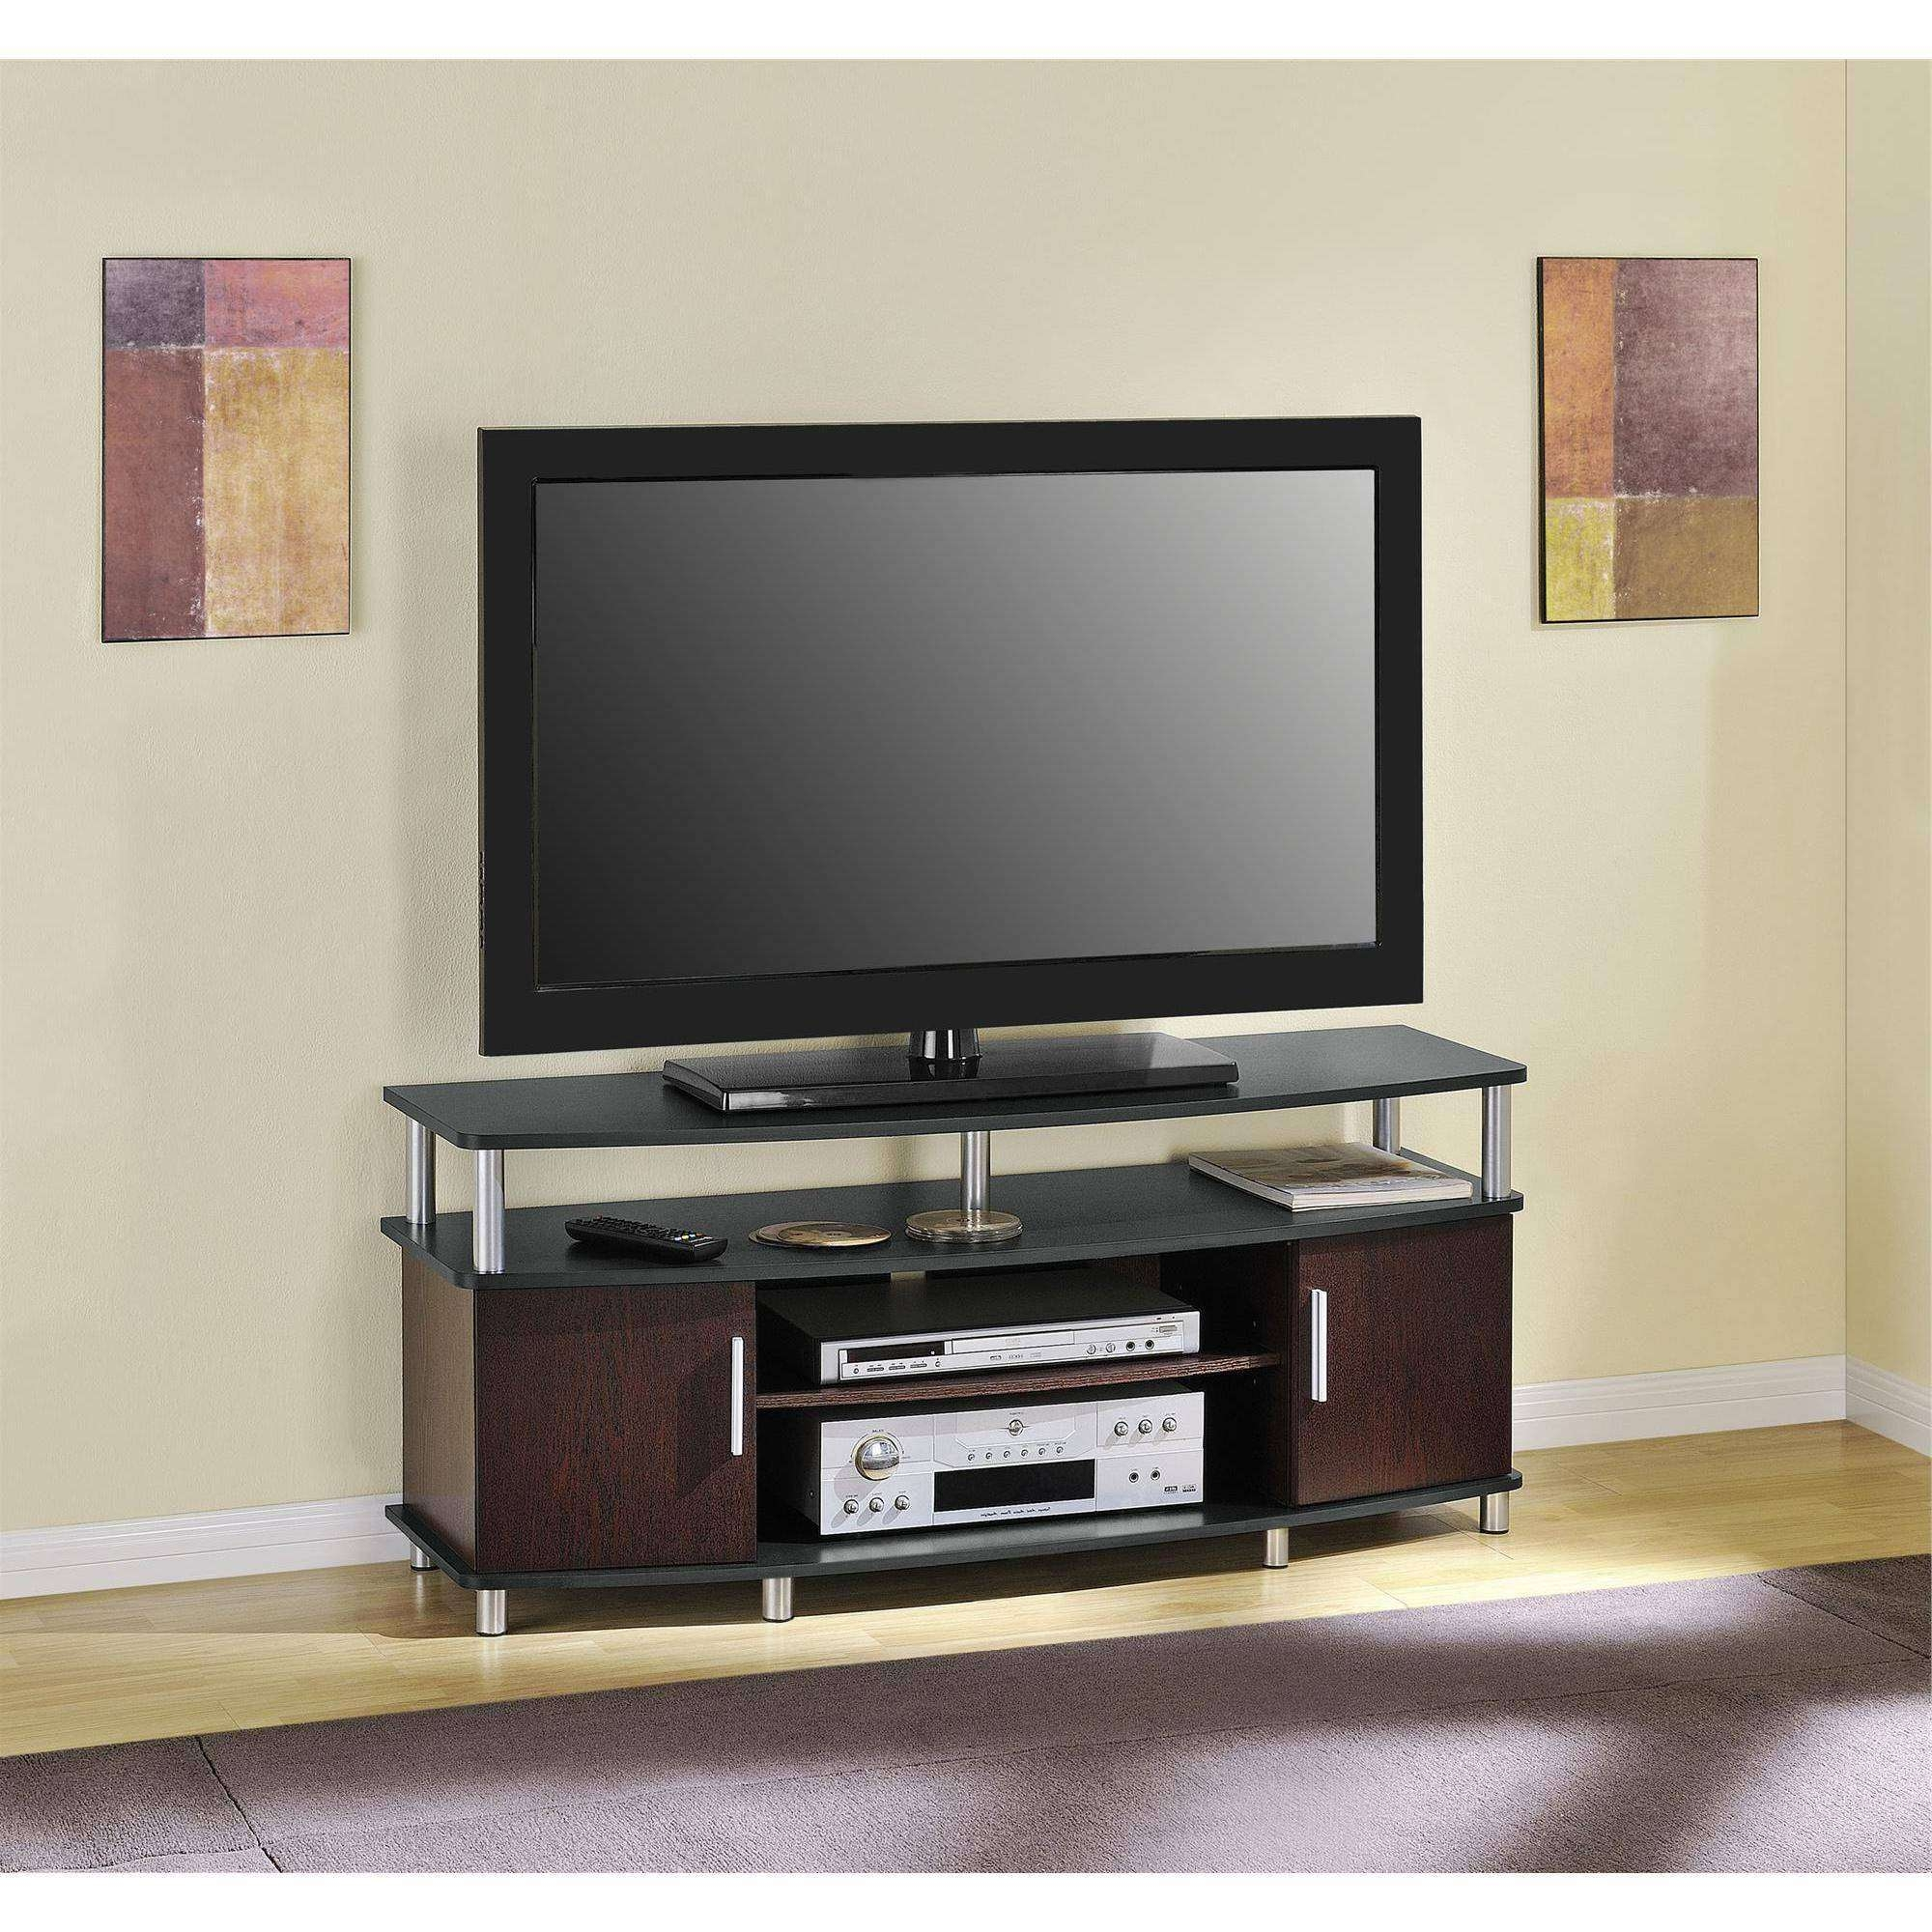 30 Awful Wood Tv Stand 50 Inch Image Inspirations Wood Tv Stand 60 In 50 Inch Corner Tv Cabinets (View 1 of 20)